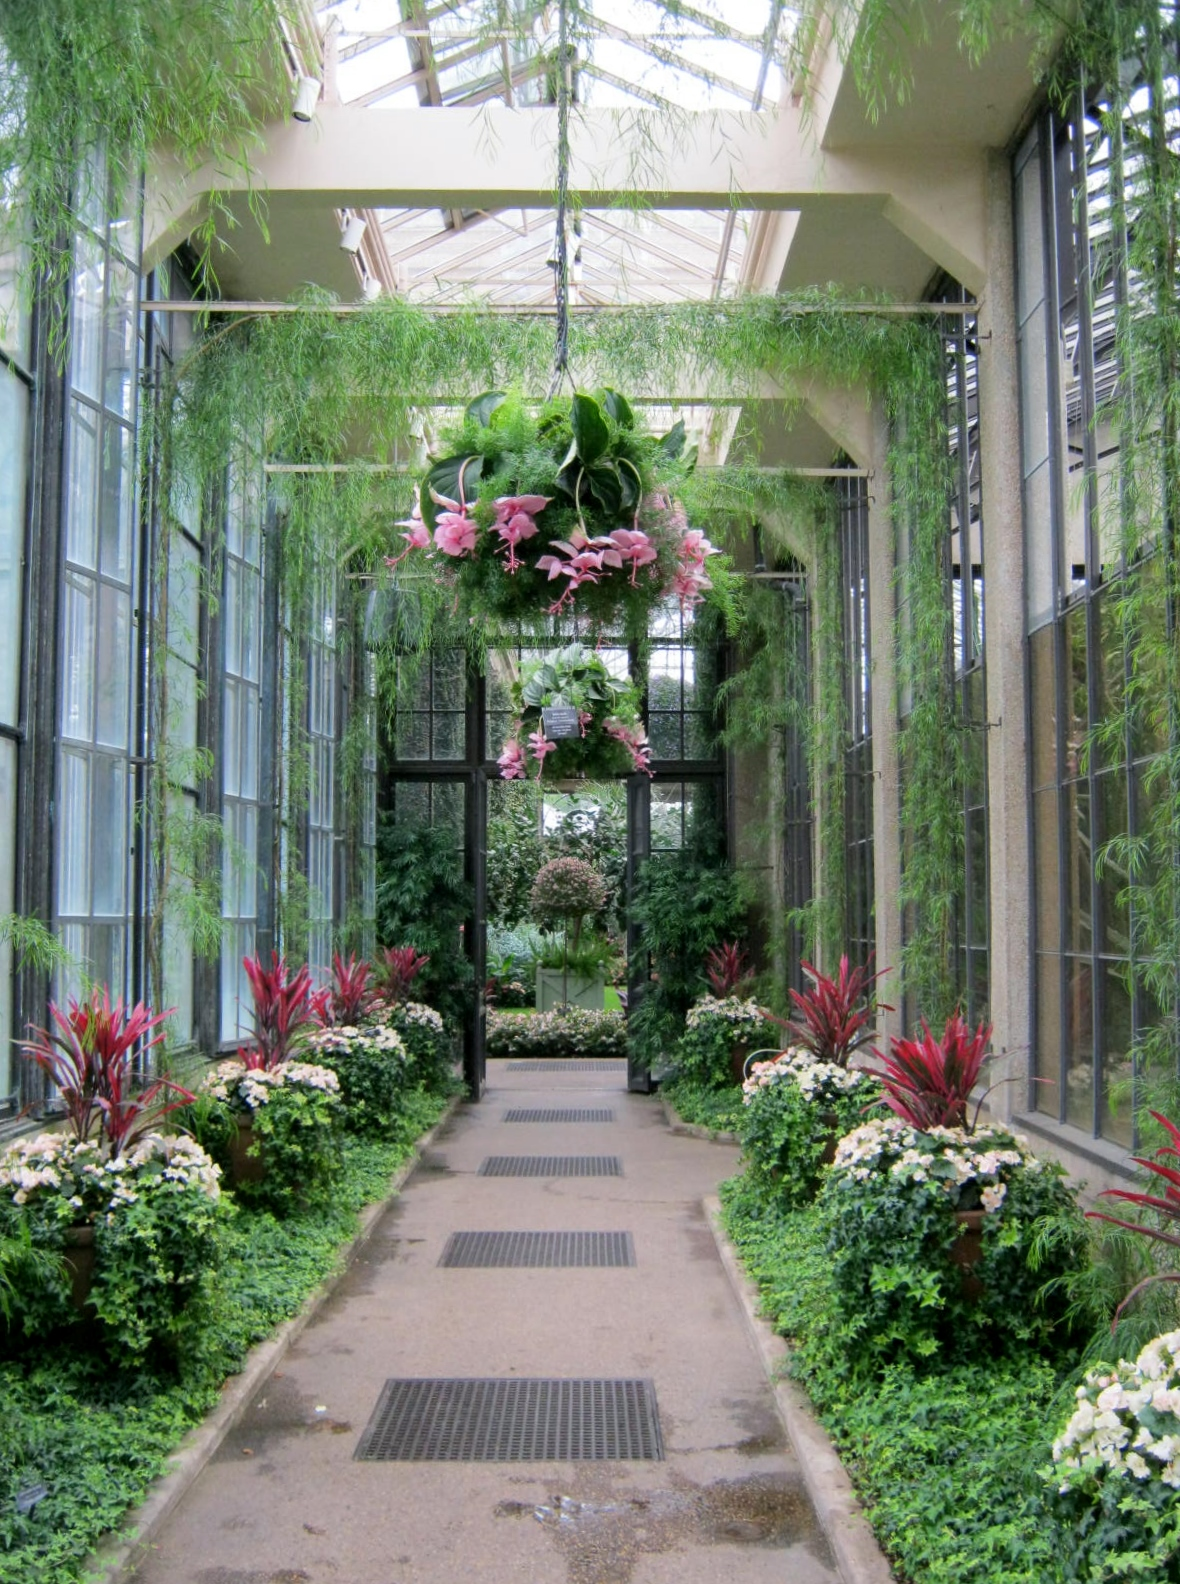 You Will Find Grids And Grates Wherever You Look In The Longwood Gardens  Conservatory. The Fragility Of The Flowers And Foliage Is Protected By The  Strength ...